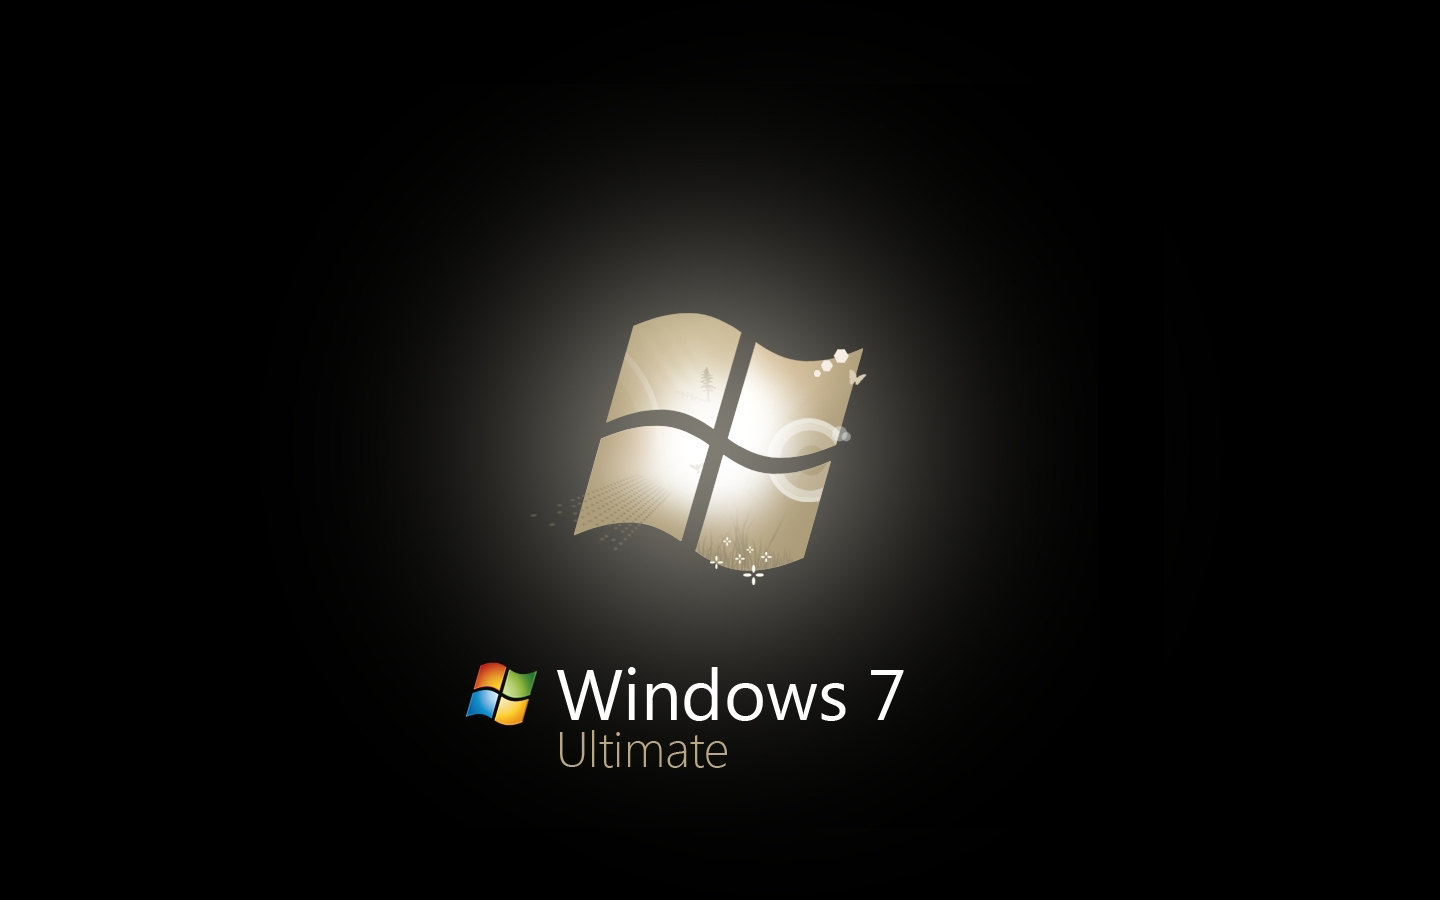 Windows 7 Ultimate Black Edition